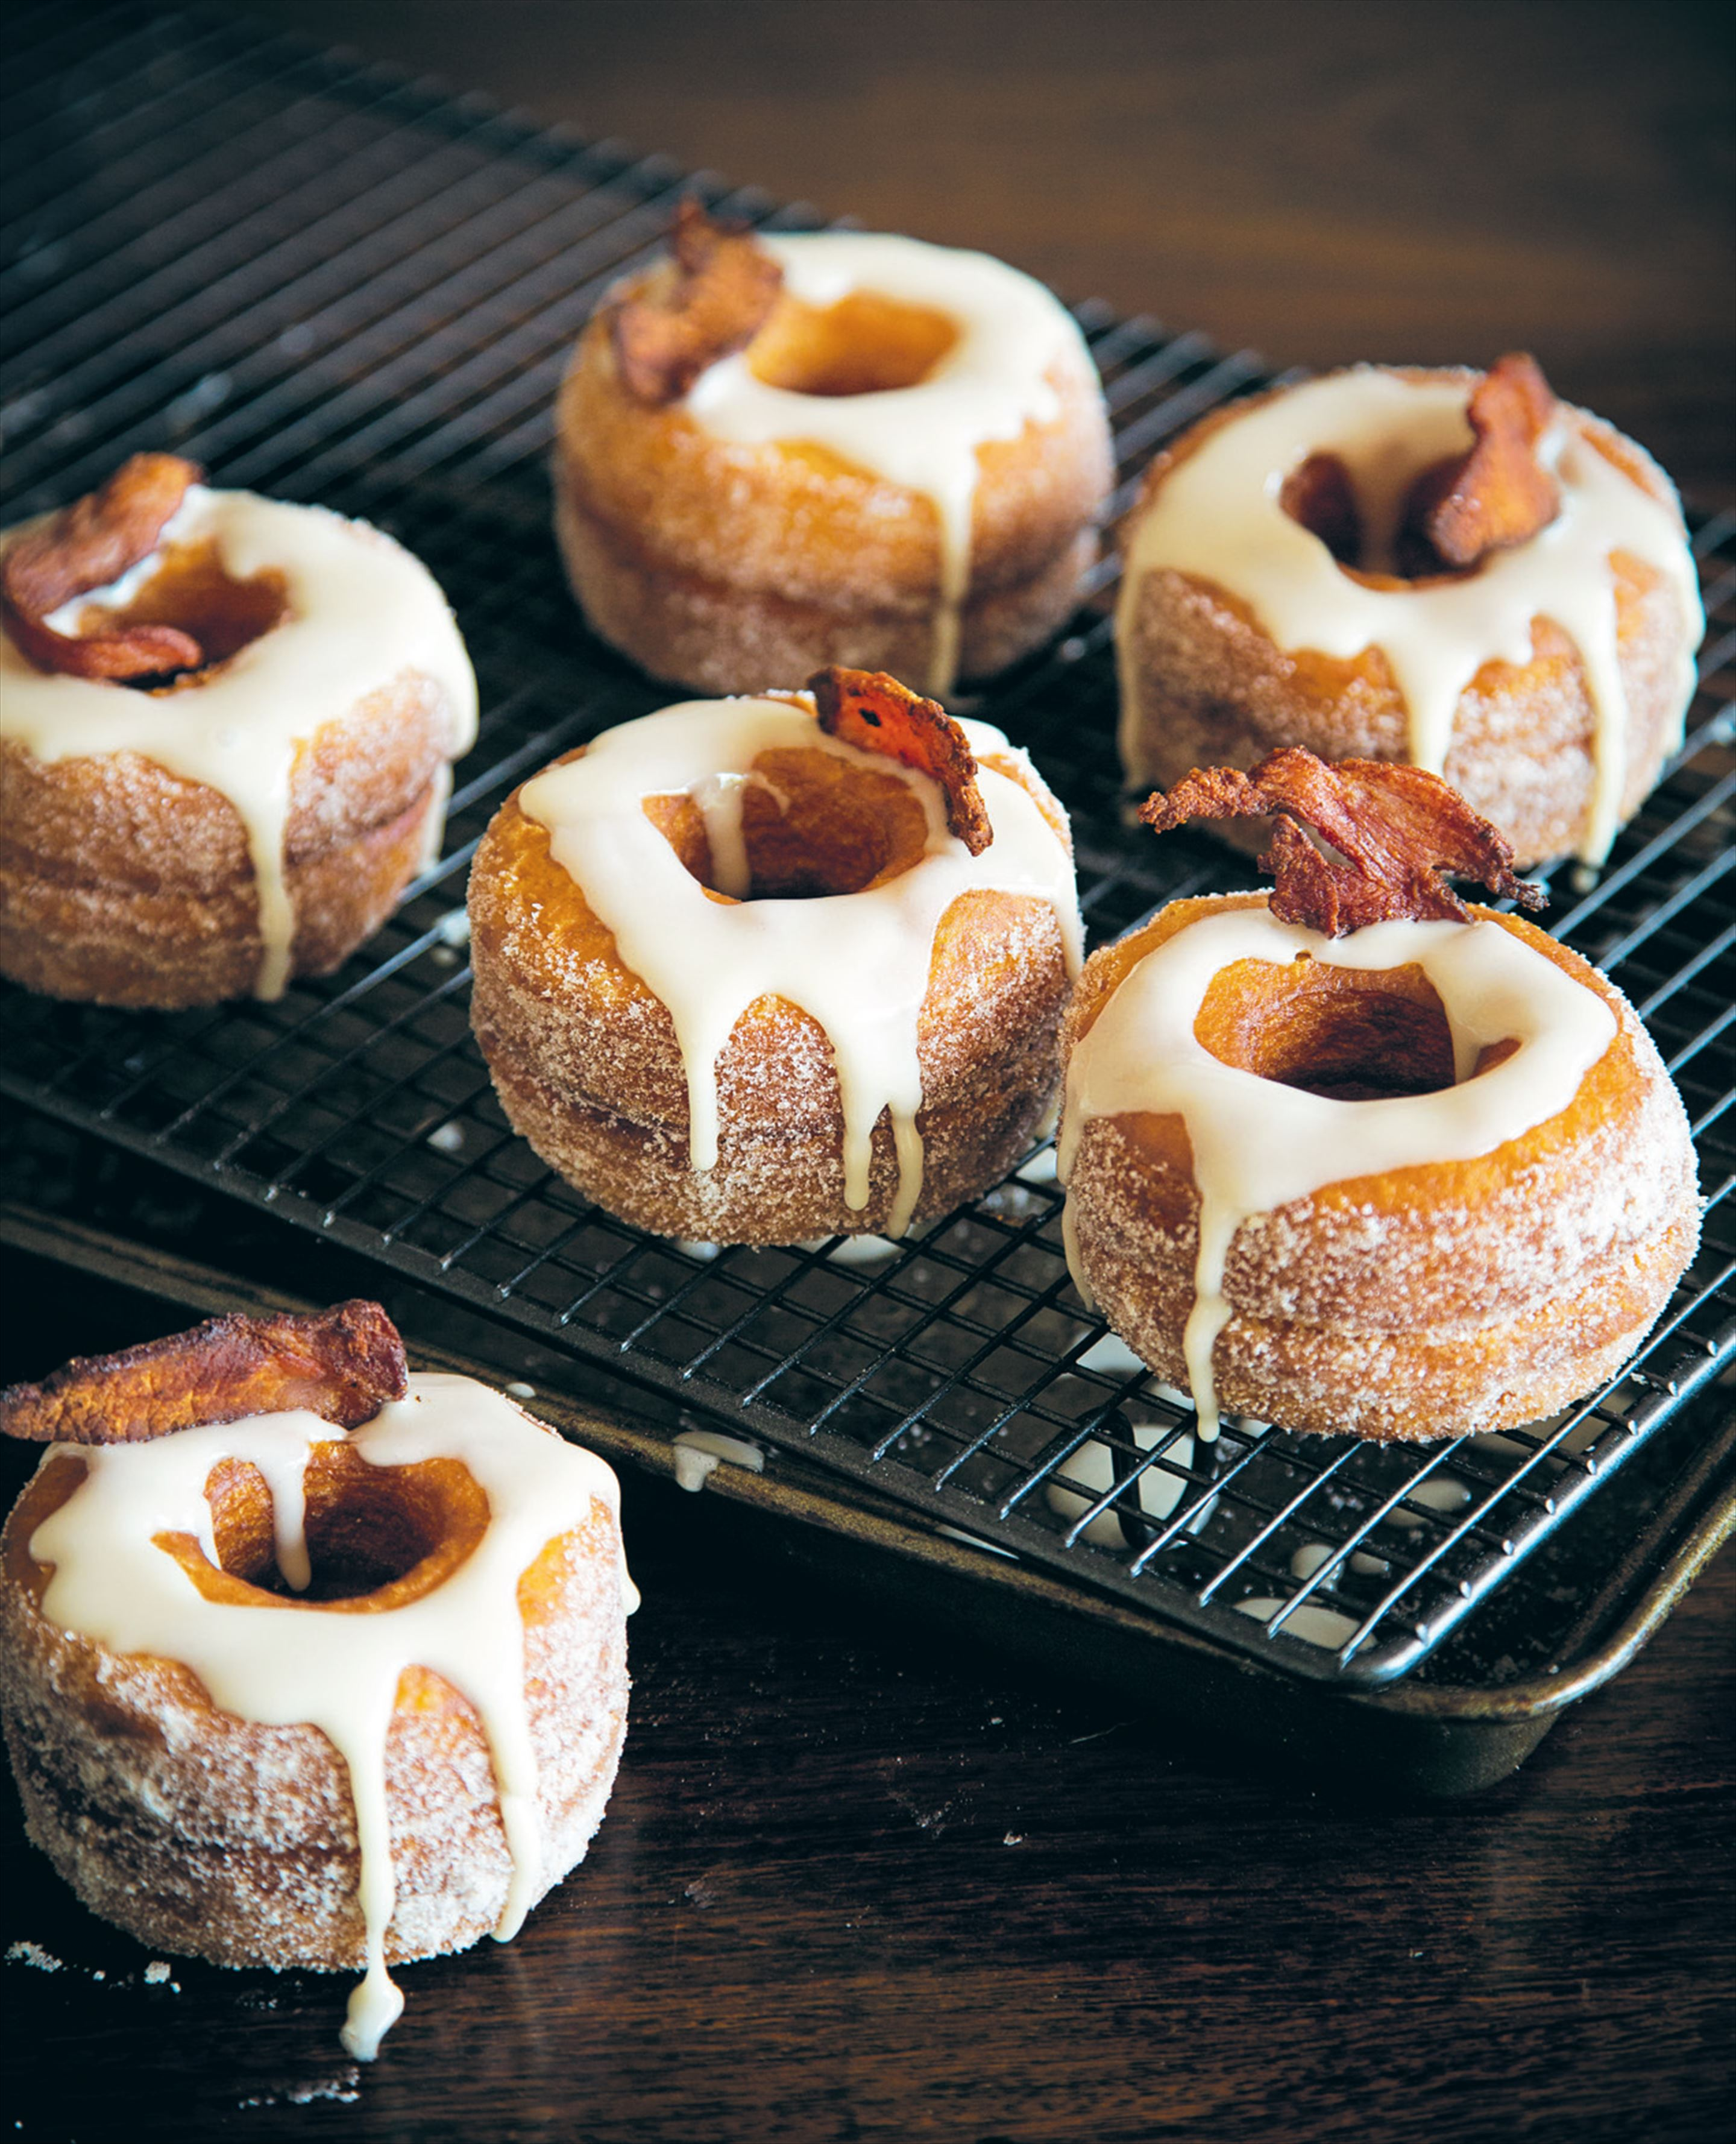 Maple-glazed bacon 'dossants' with salted caramel filling